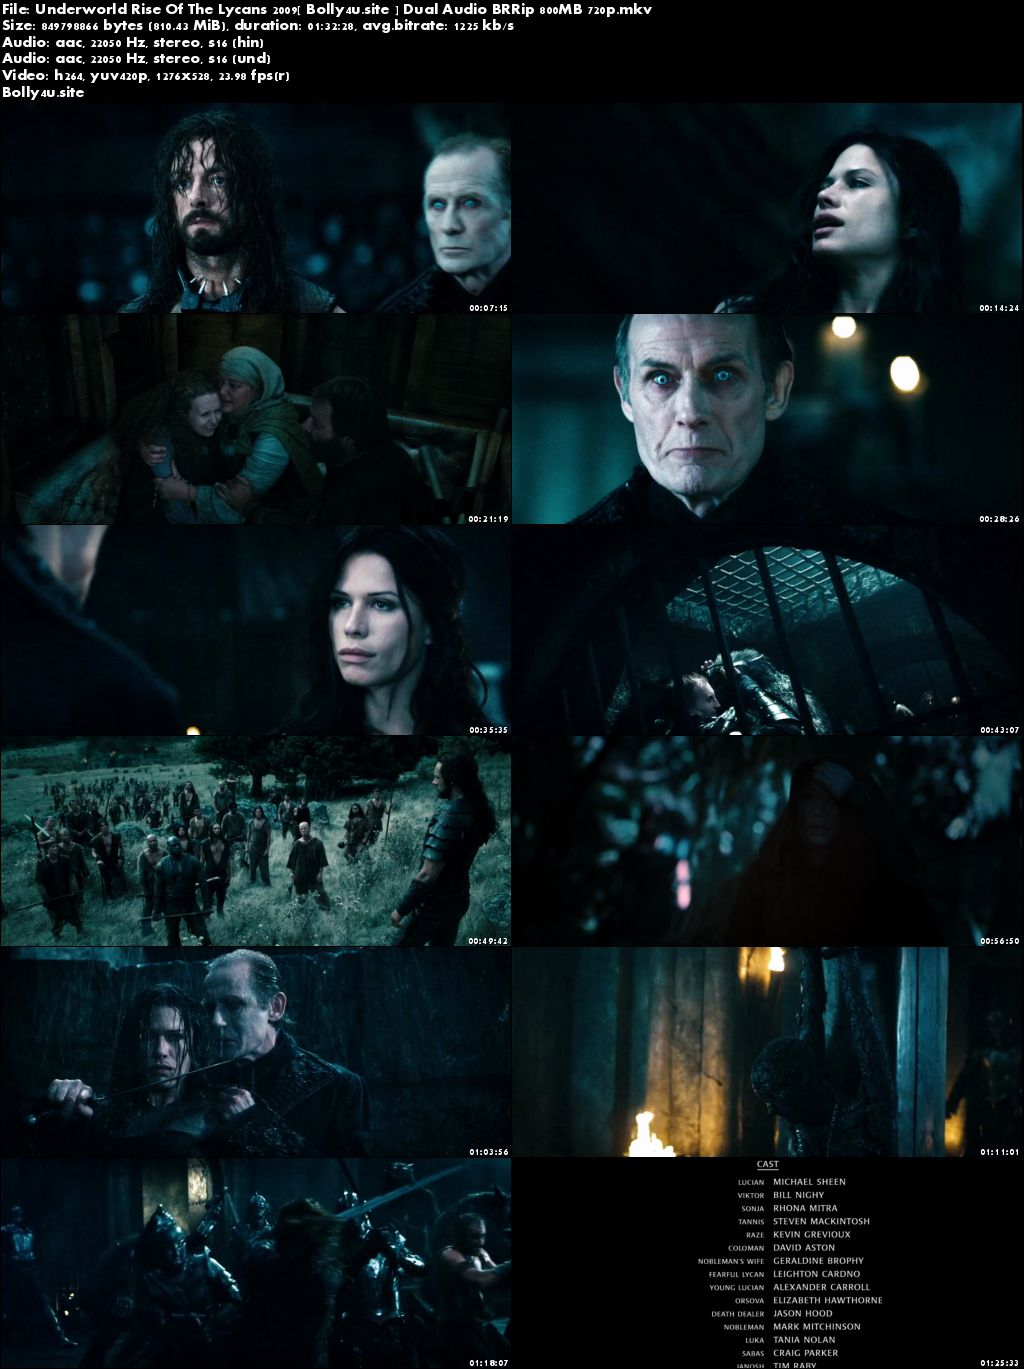 Underworld Rise Of The Lycans 2009 BRRip 800Mb Hindi Dual Audio 720p Download